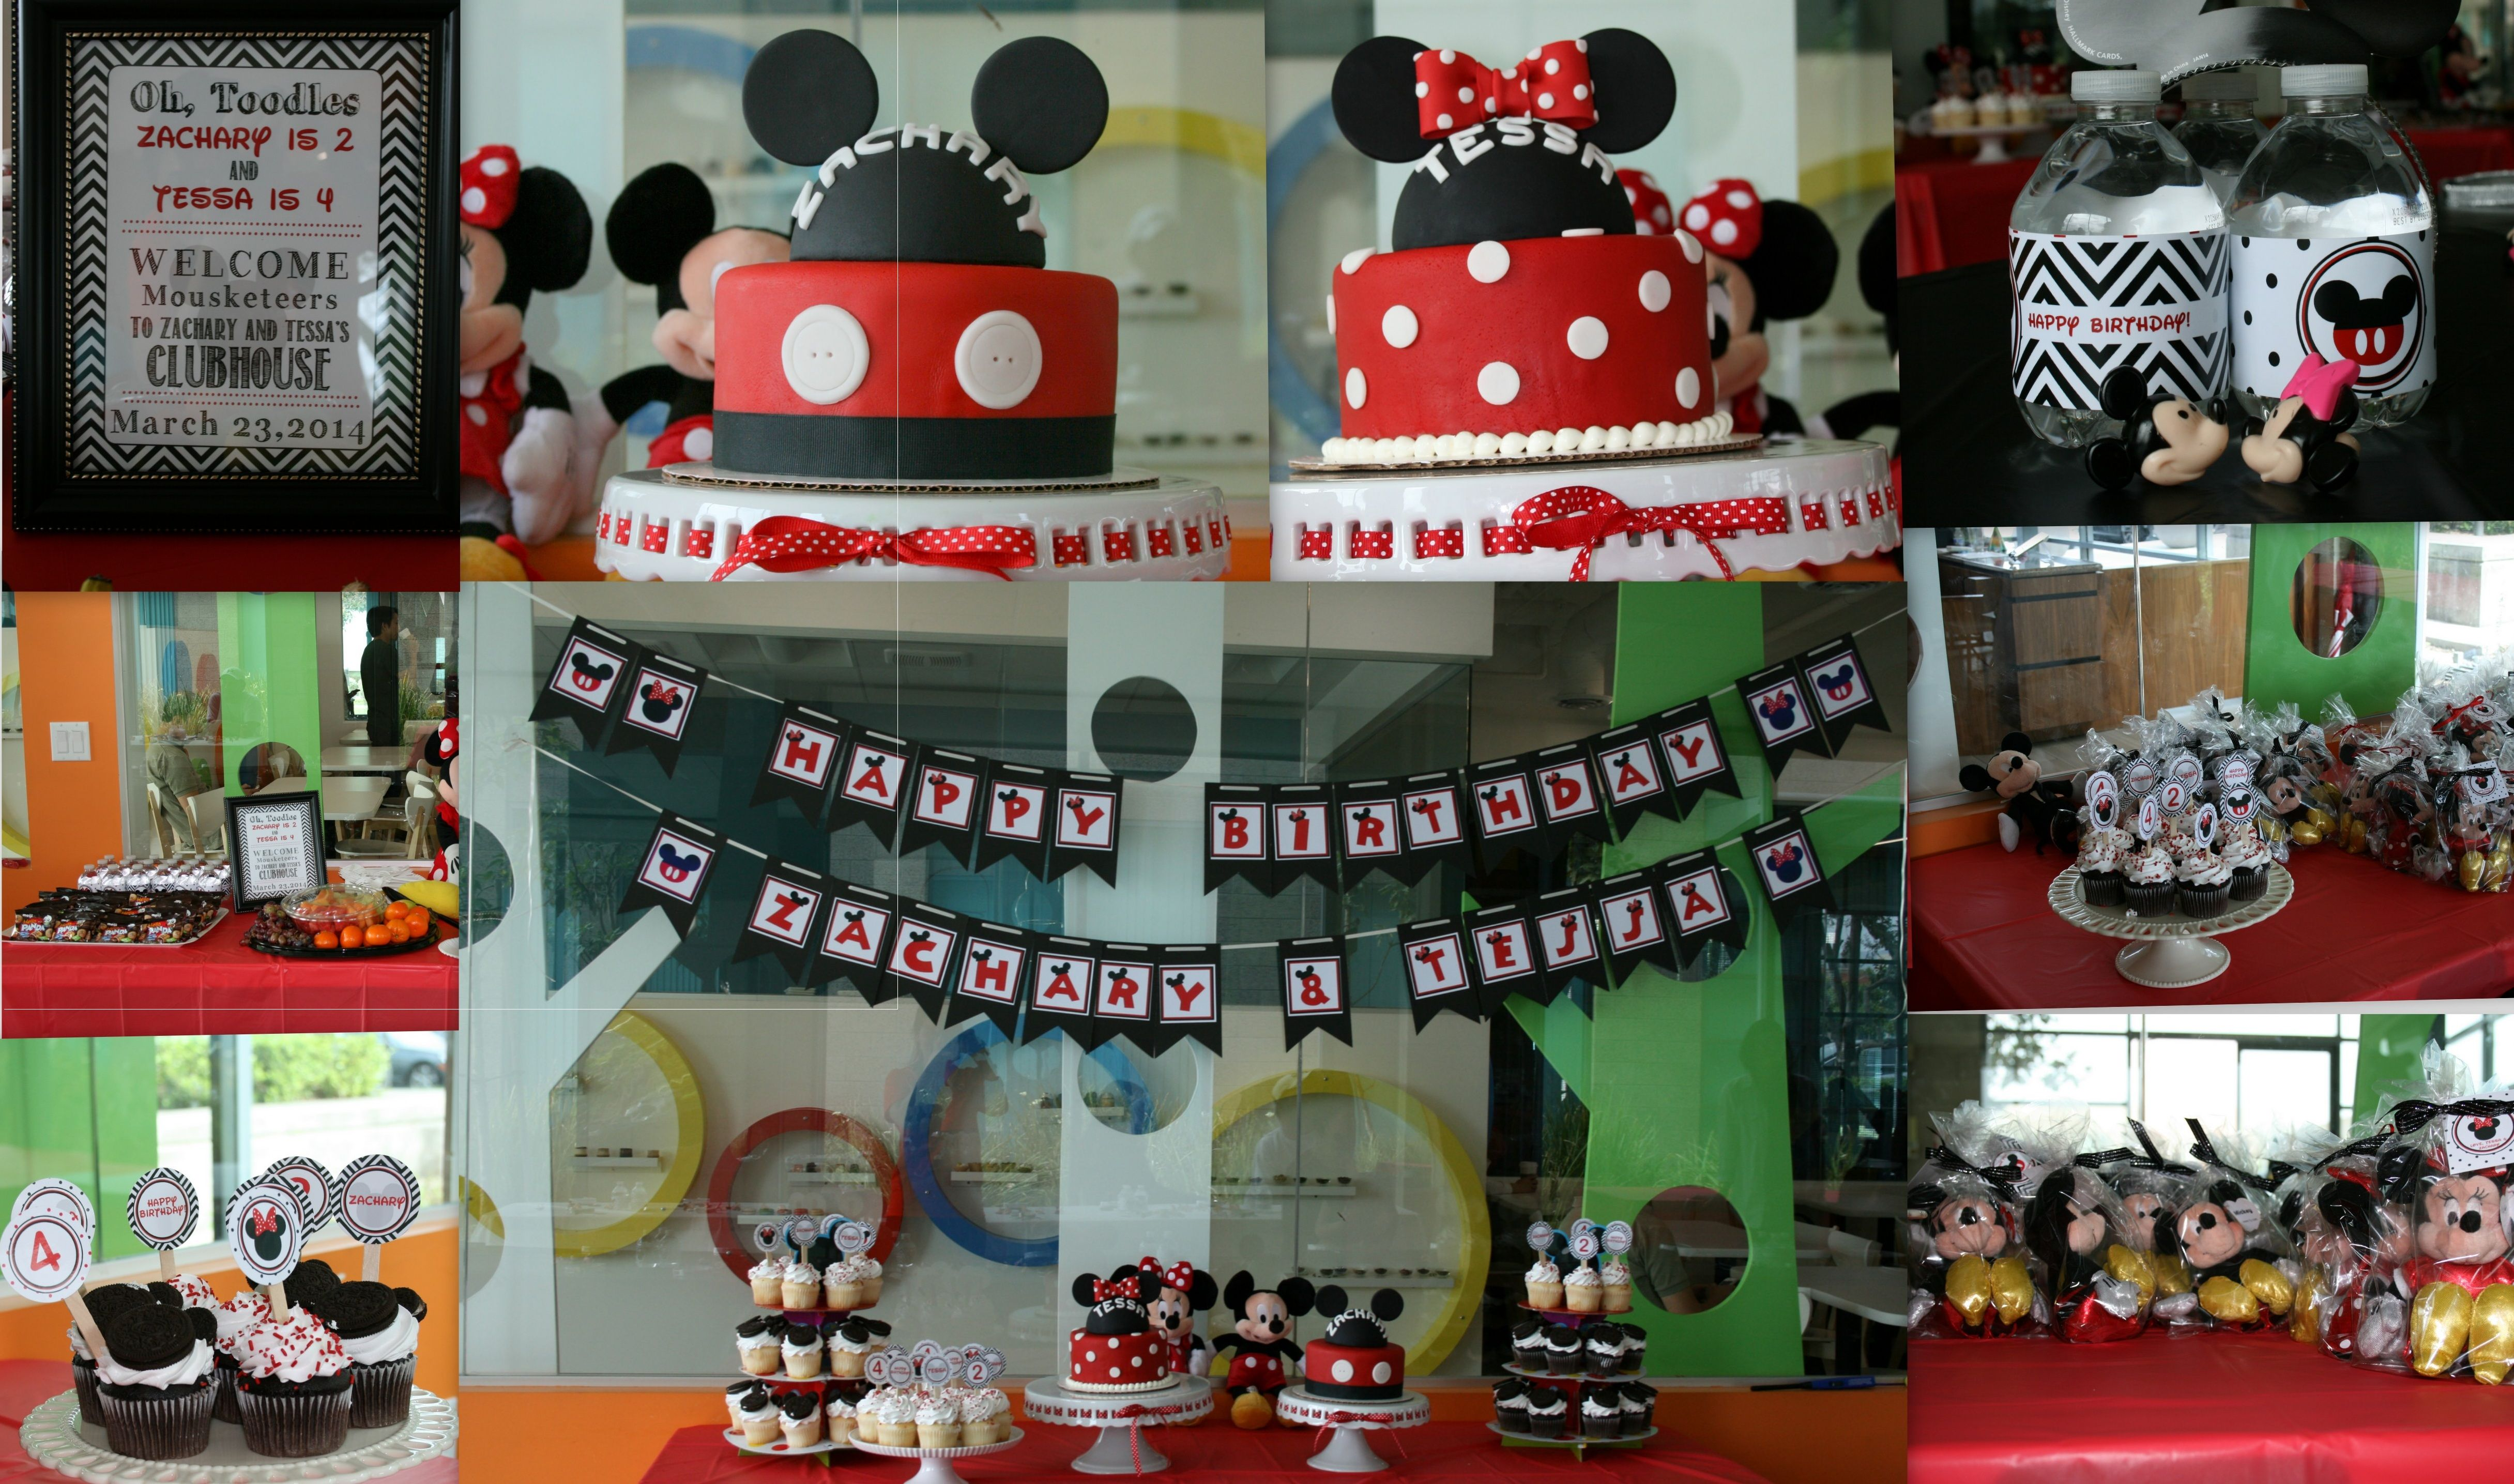 Fellow #Mouseketeers celebrated Zachary and Tessa's #birthdays alongside #Mickey and #Minnie at #PlaylandCafe!  Elegantly decorated affair with delightful #cupcakes, cool grab bags, and topped off with twin amazing #cakes!  We had a great time with the birthday family and friends. Thank you for spending your special day with us!